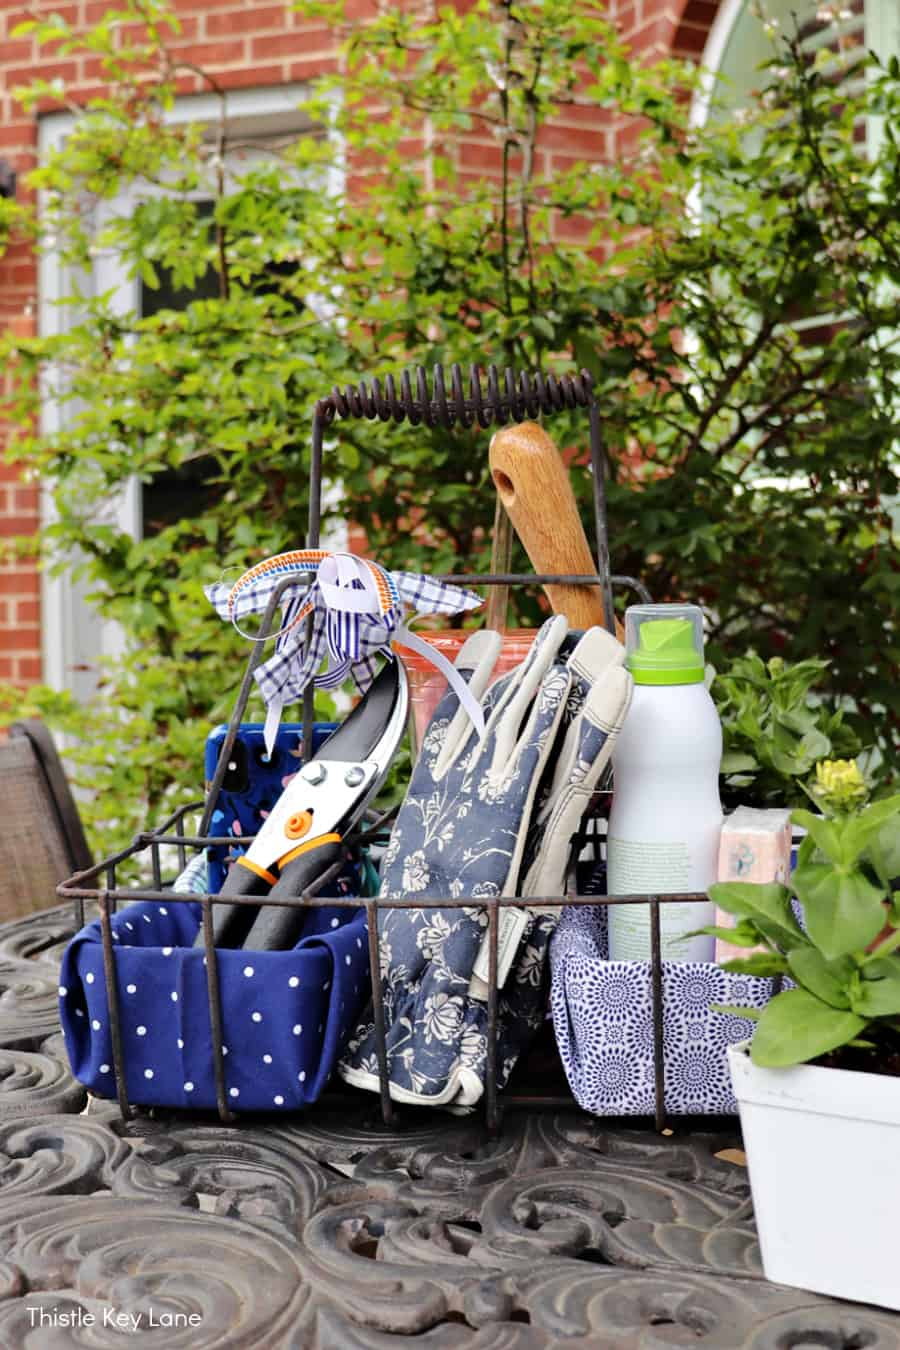 Garden gloves, pruning clippers, and other supplies in a wire caddy. DIY Garden Tool Caddy.